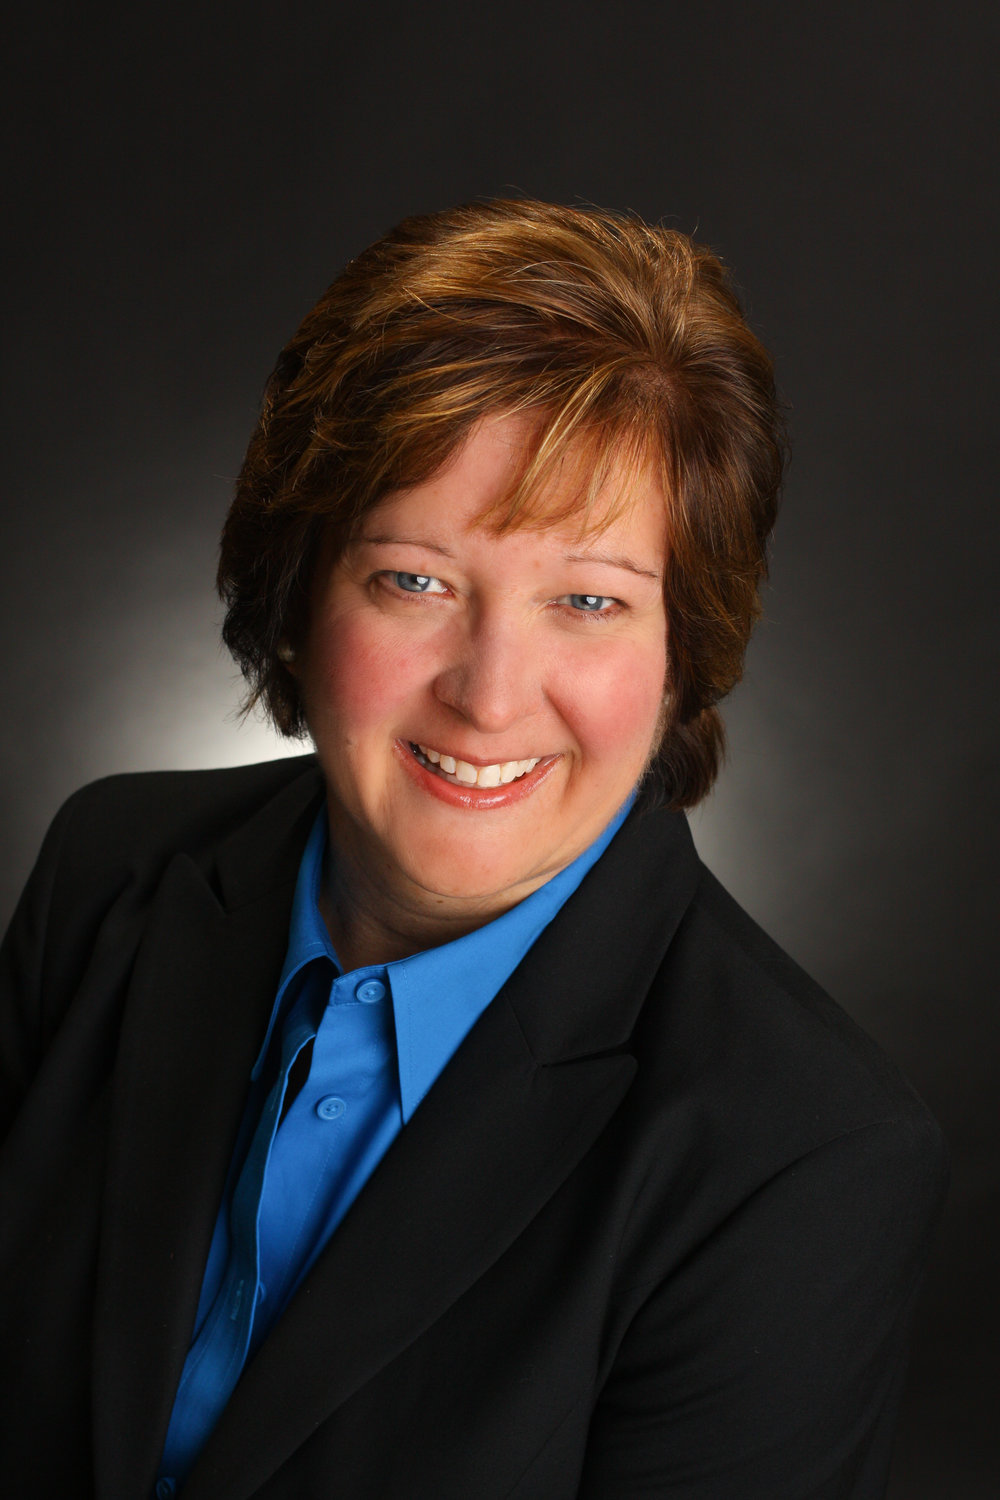 Founder: Rebecca Bosl The only Career Strategist with a 20-year background in branding. 9X Certified Career Expert